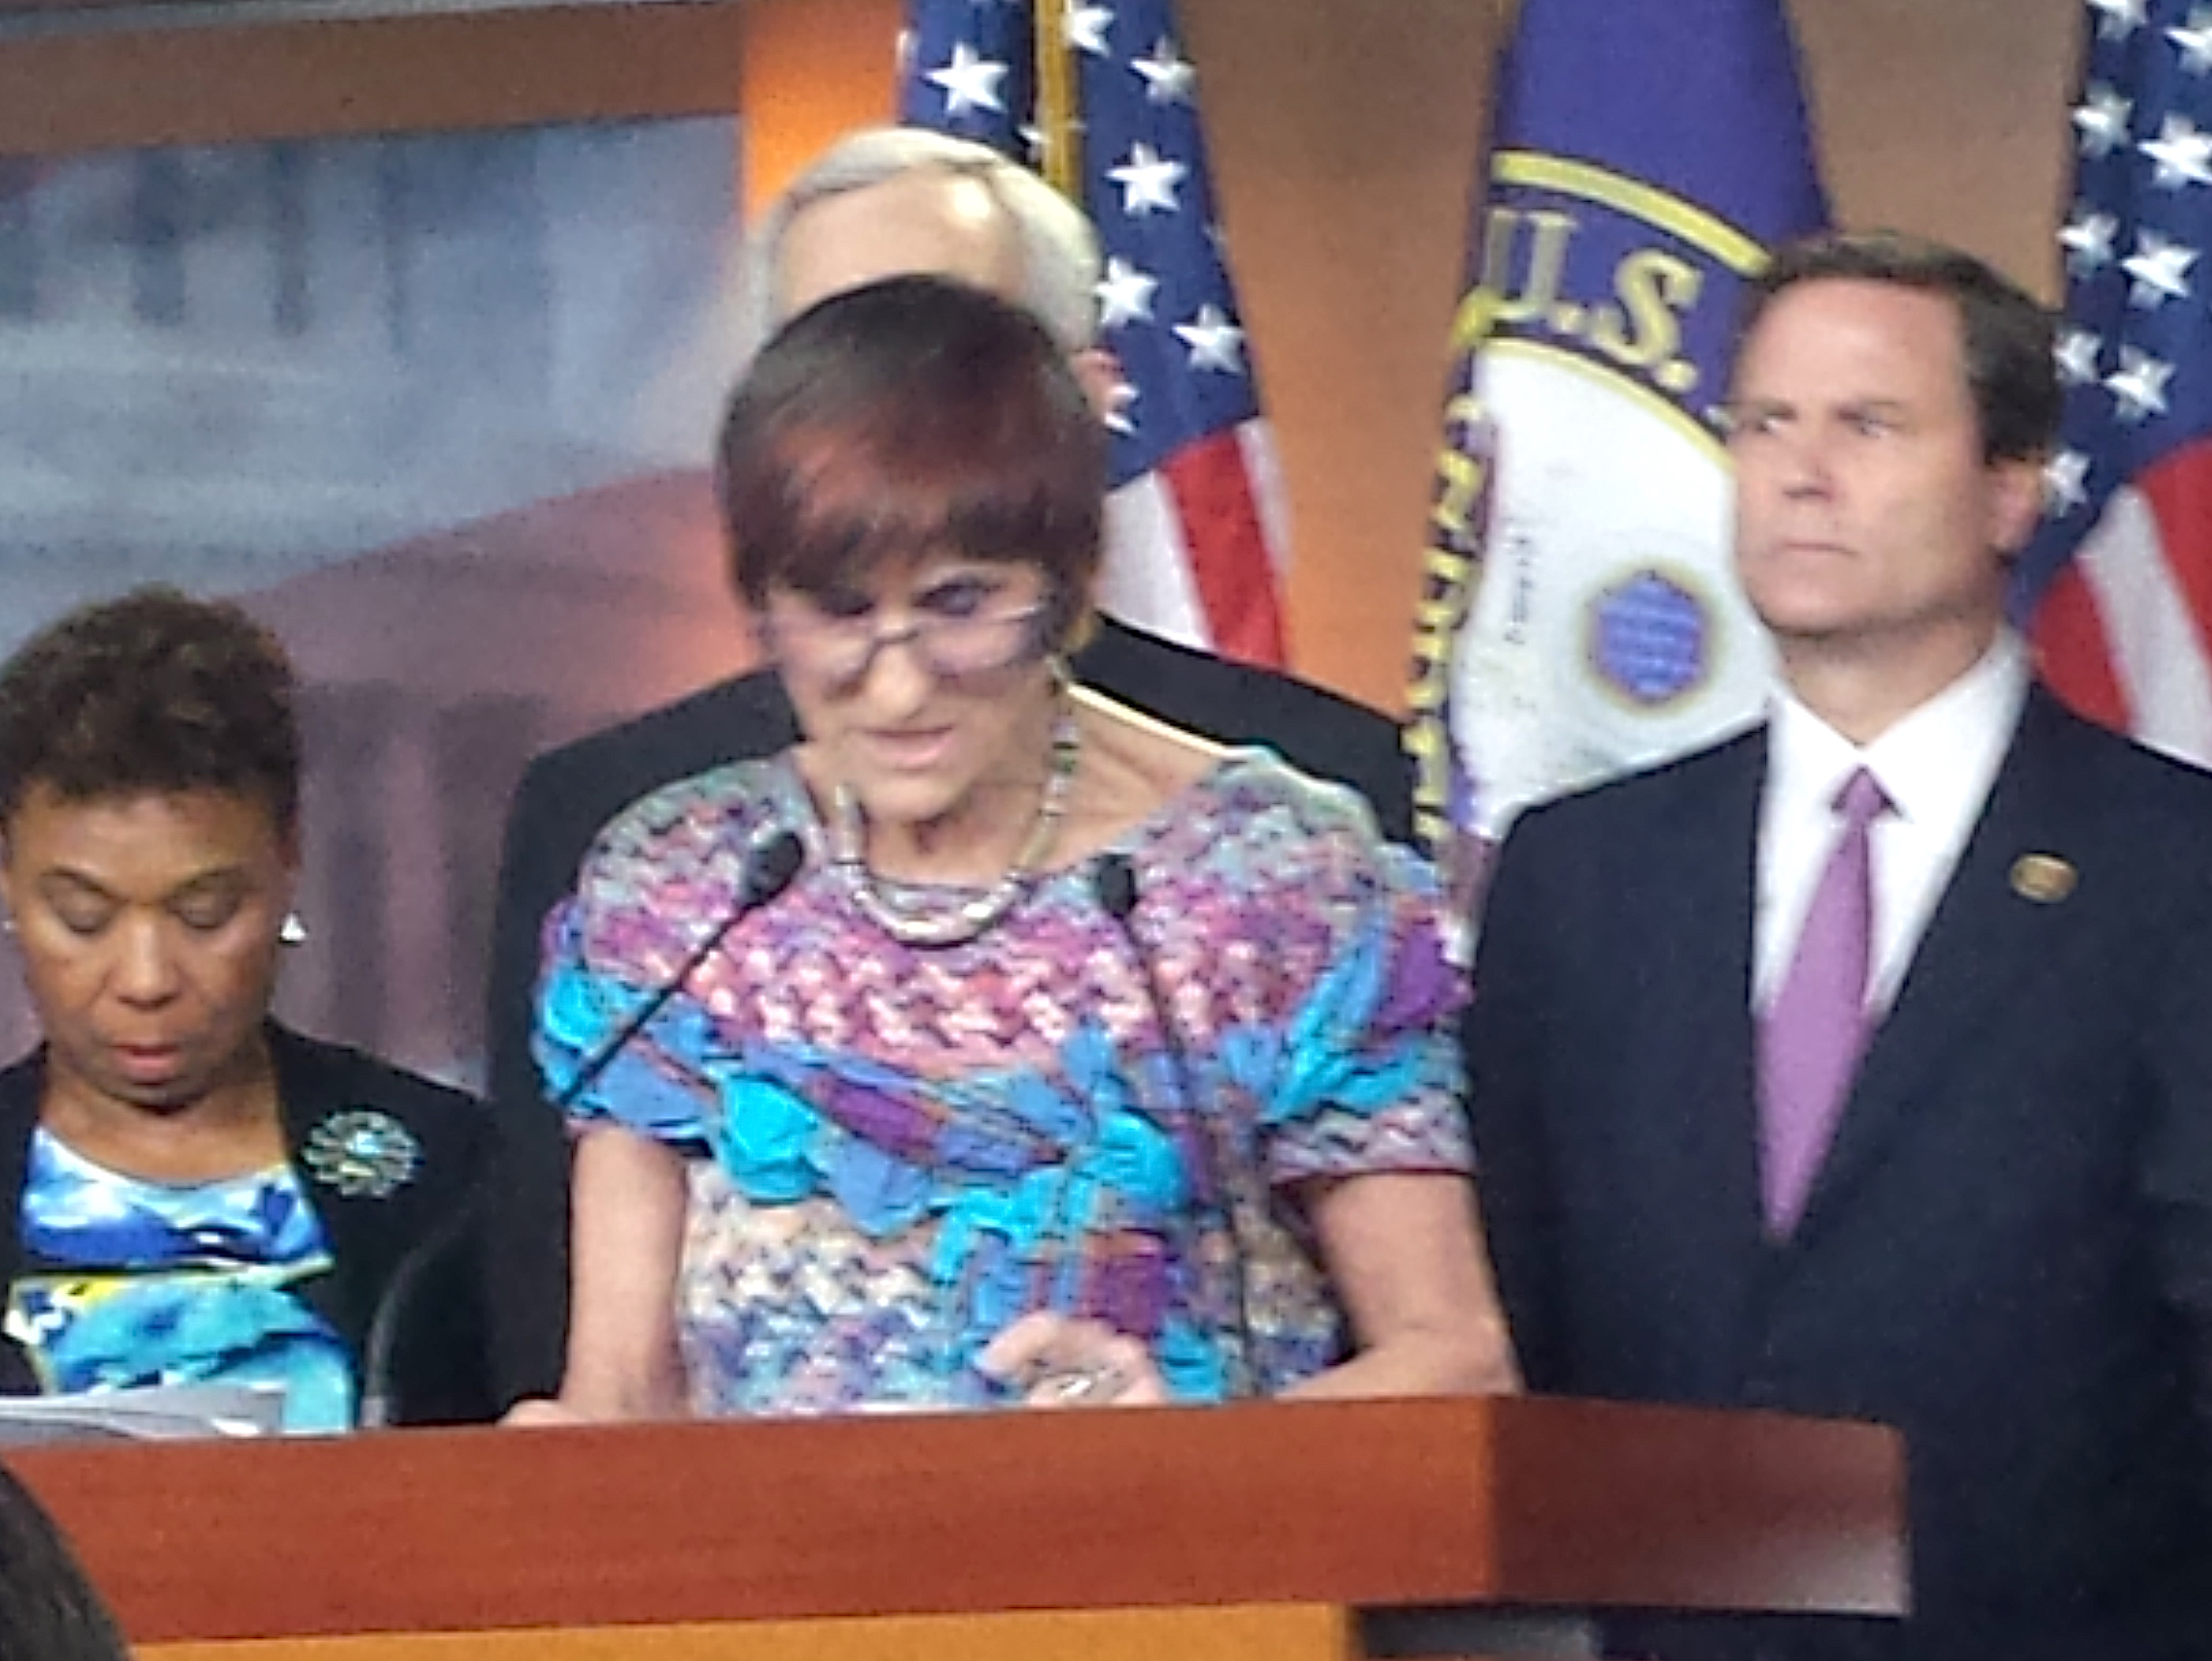 DeLauro continues to lead defiance against Obama on trade